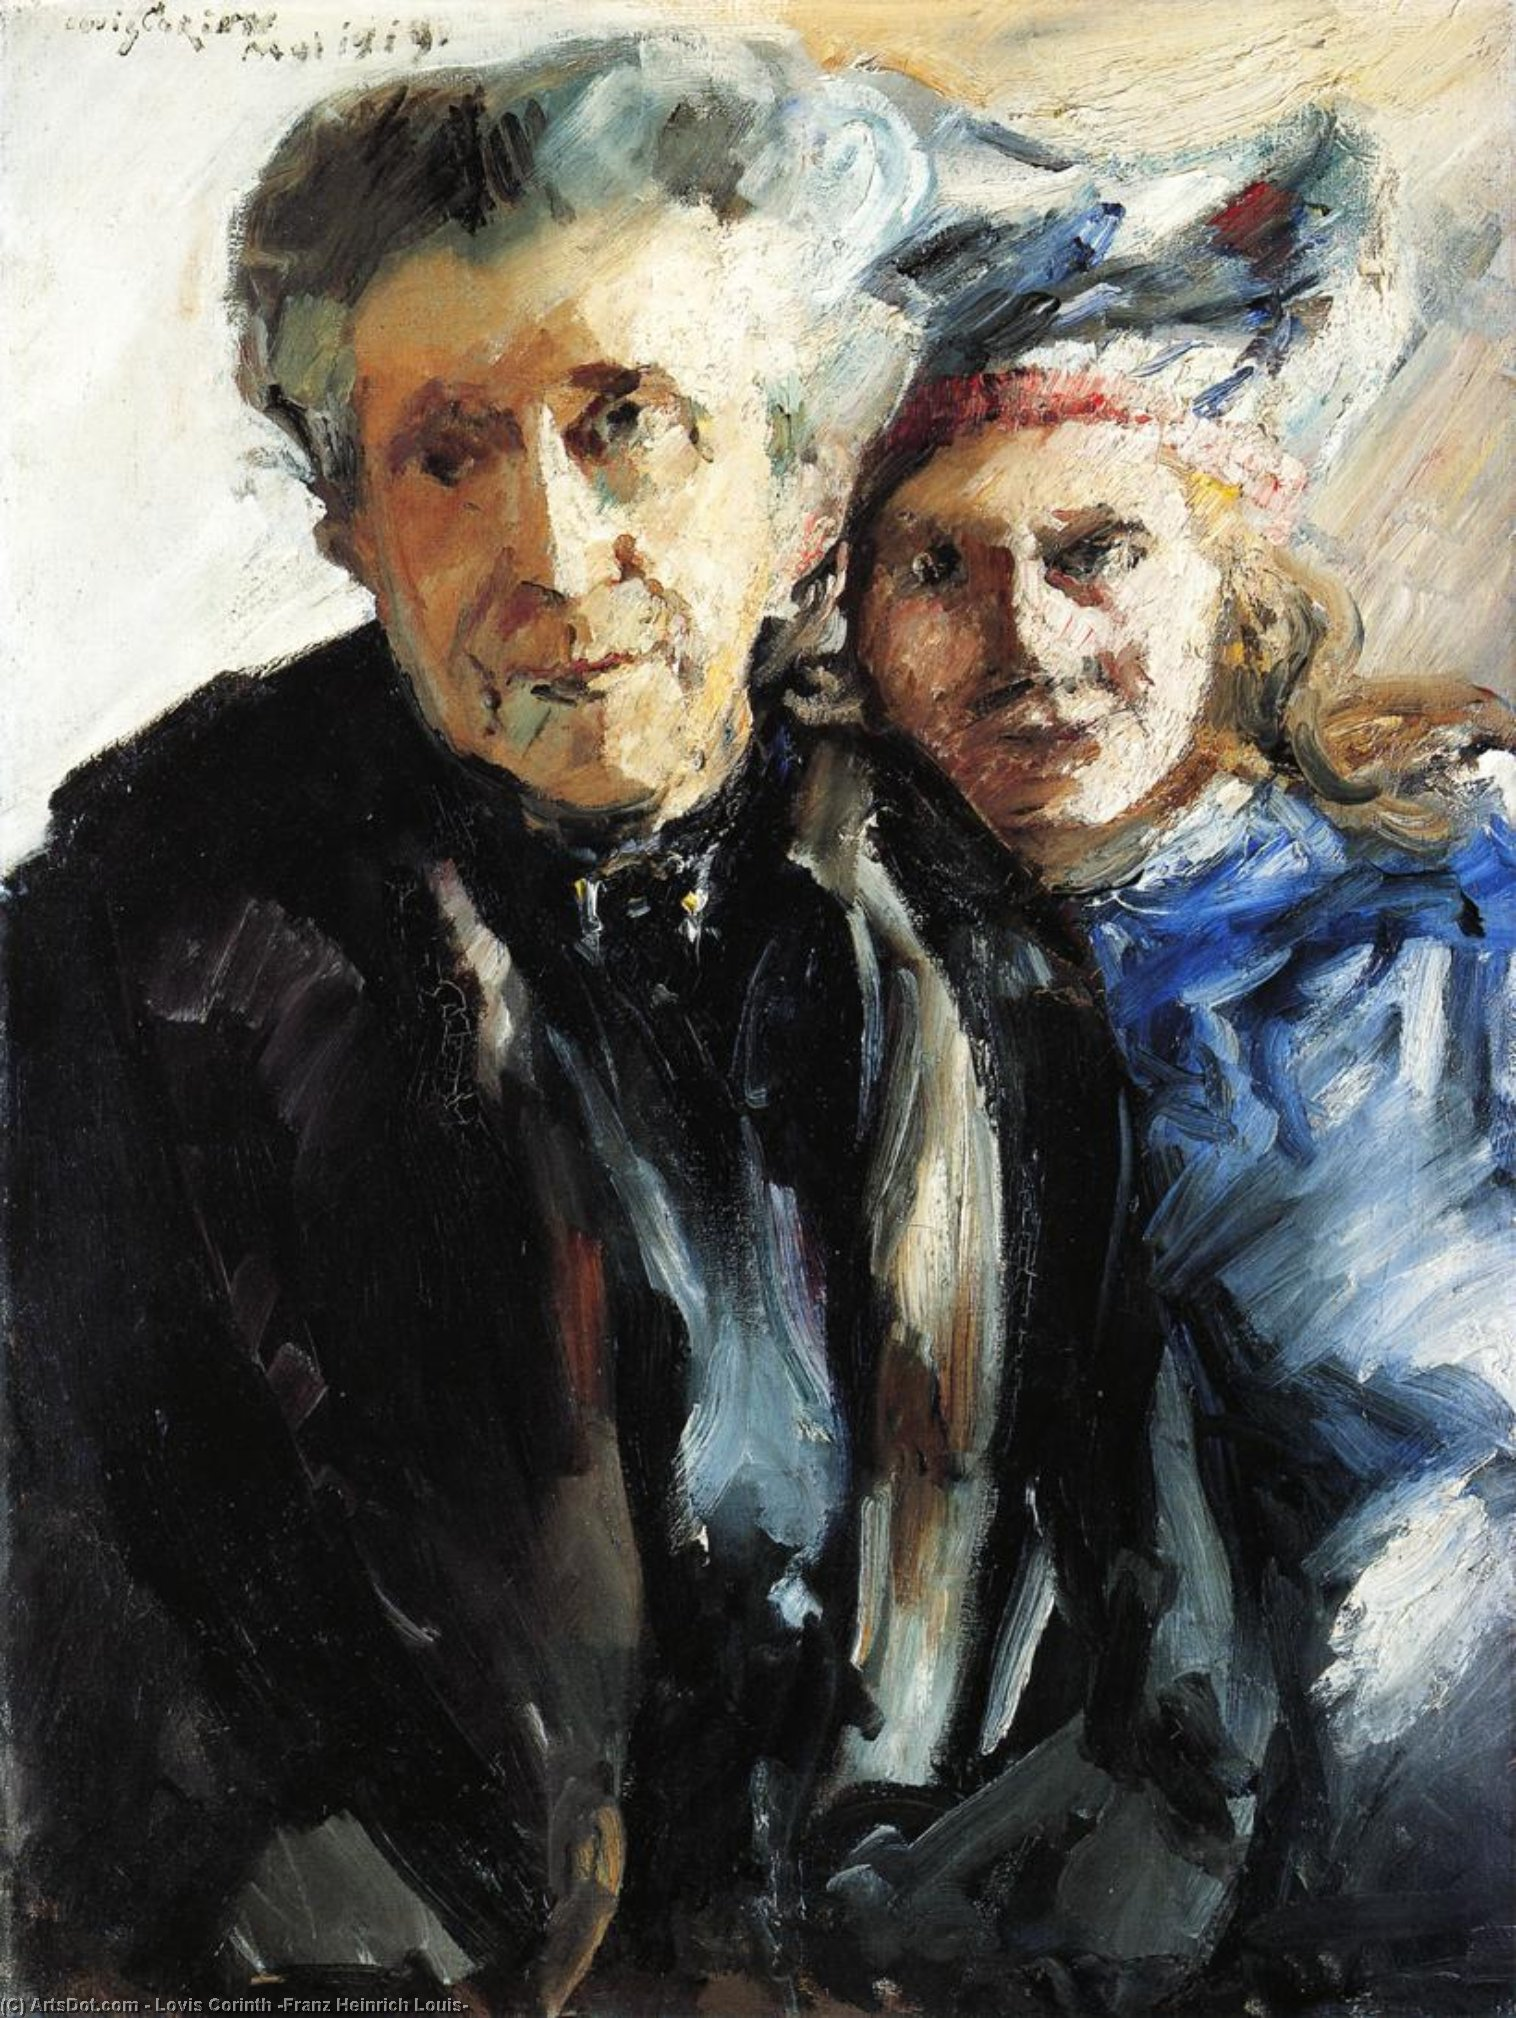 Grandmother and Granddaughter, Oil On Canvas by Lovis Corinth (Franz Heinrich Louis) (1858-1925, Netherlands)